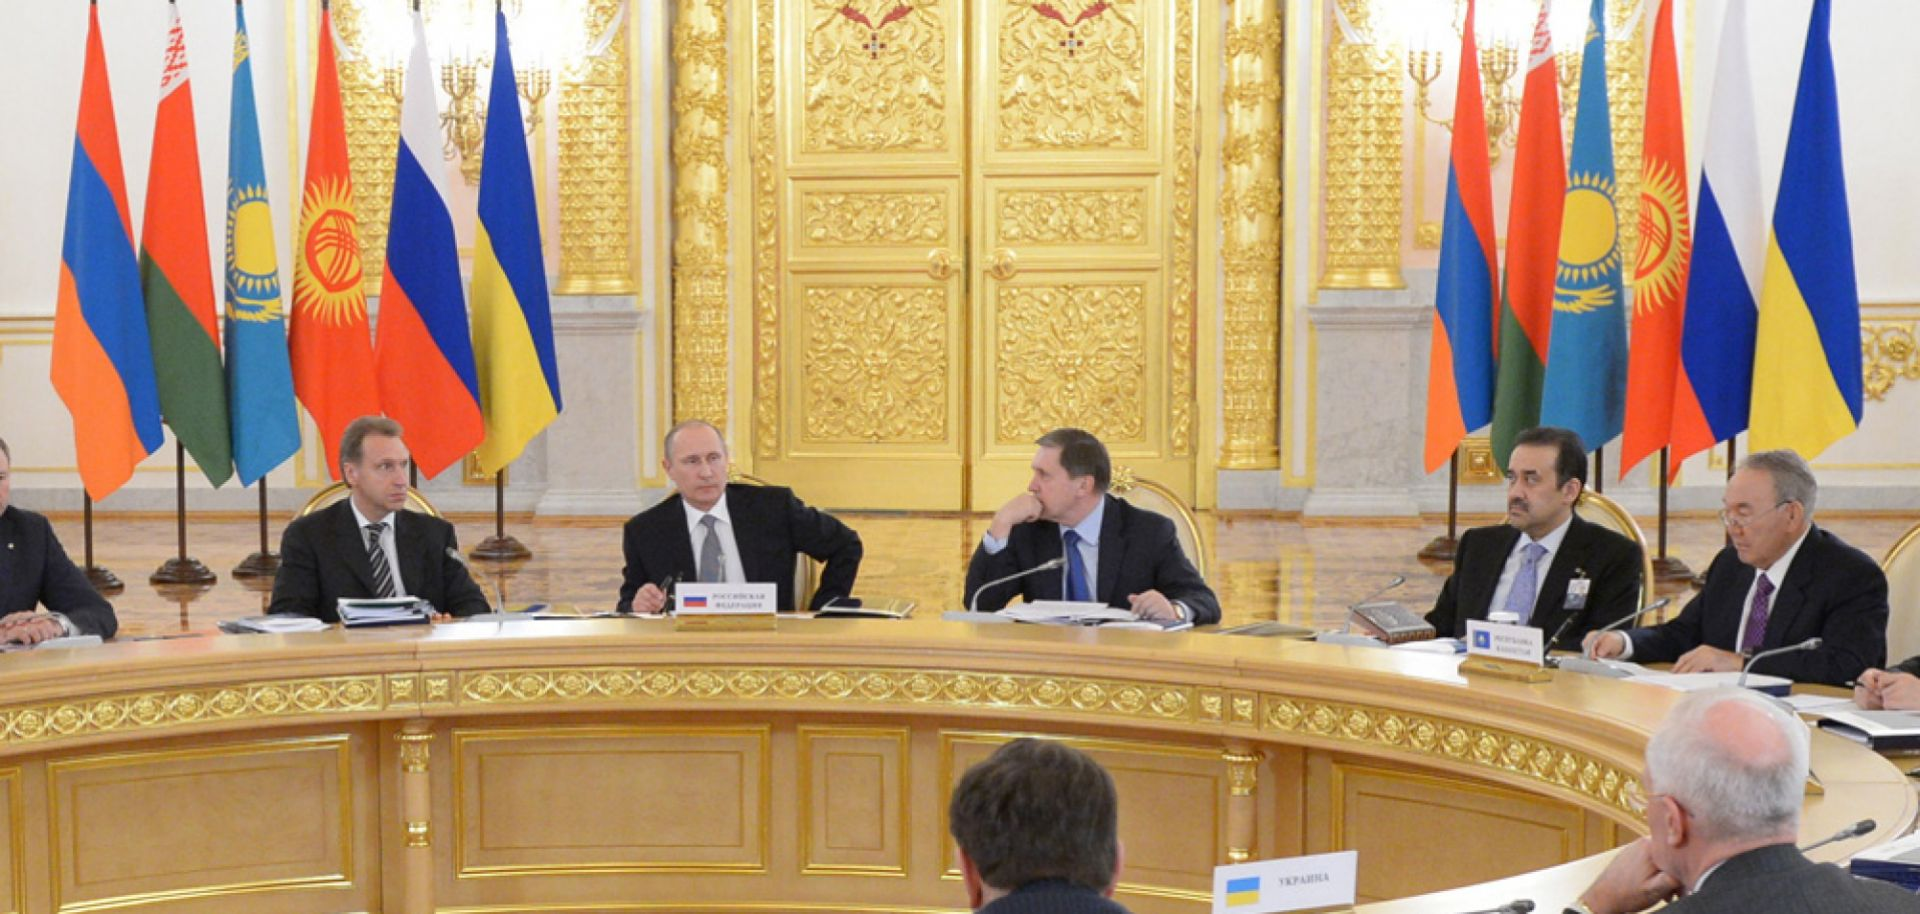 Russia's goals for the Eurasian Economic Union